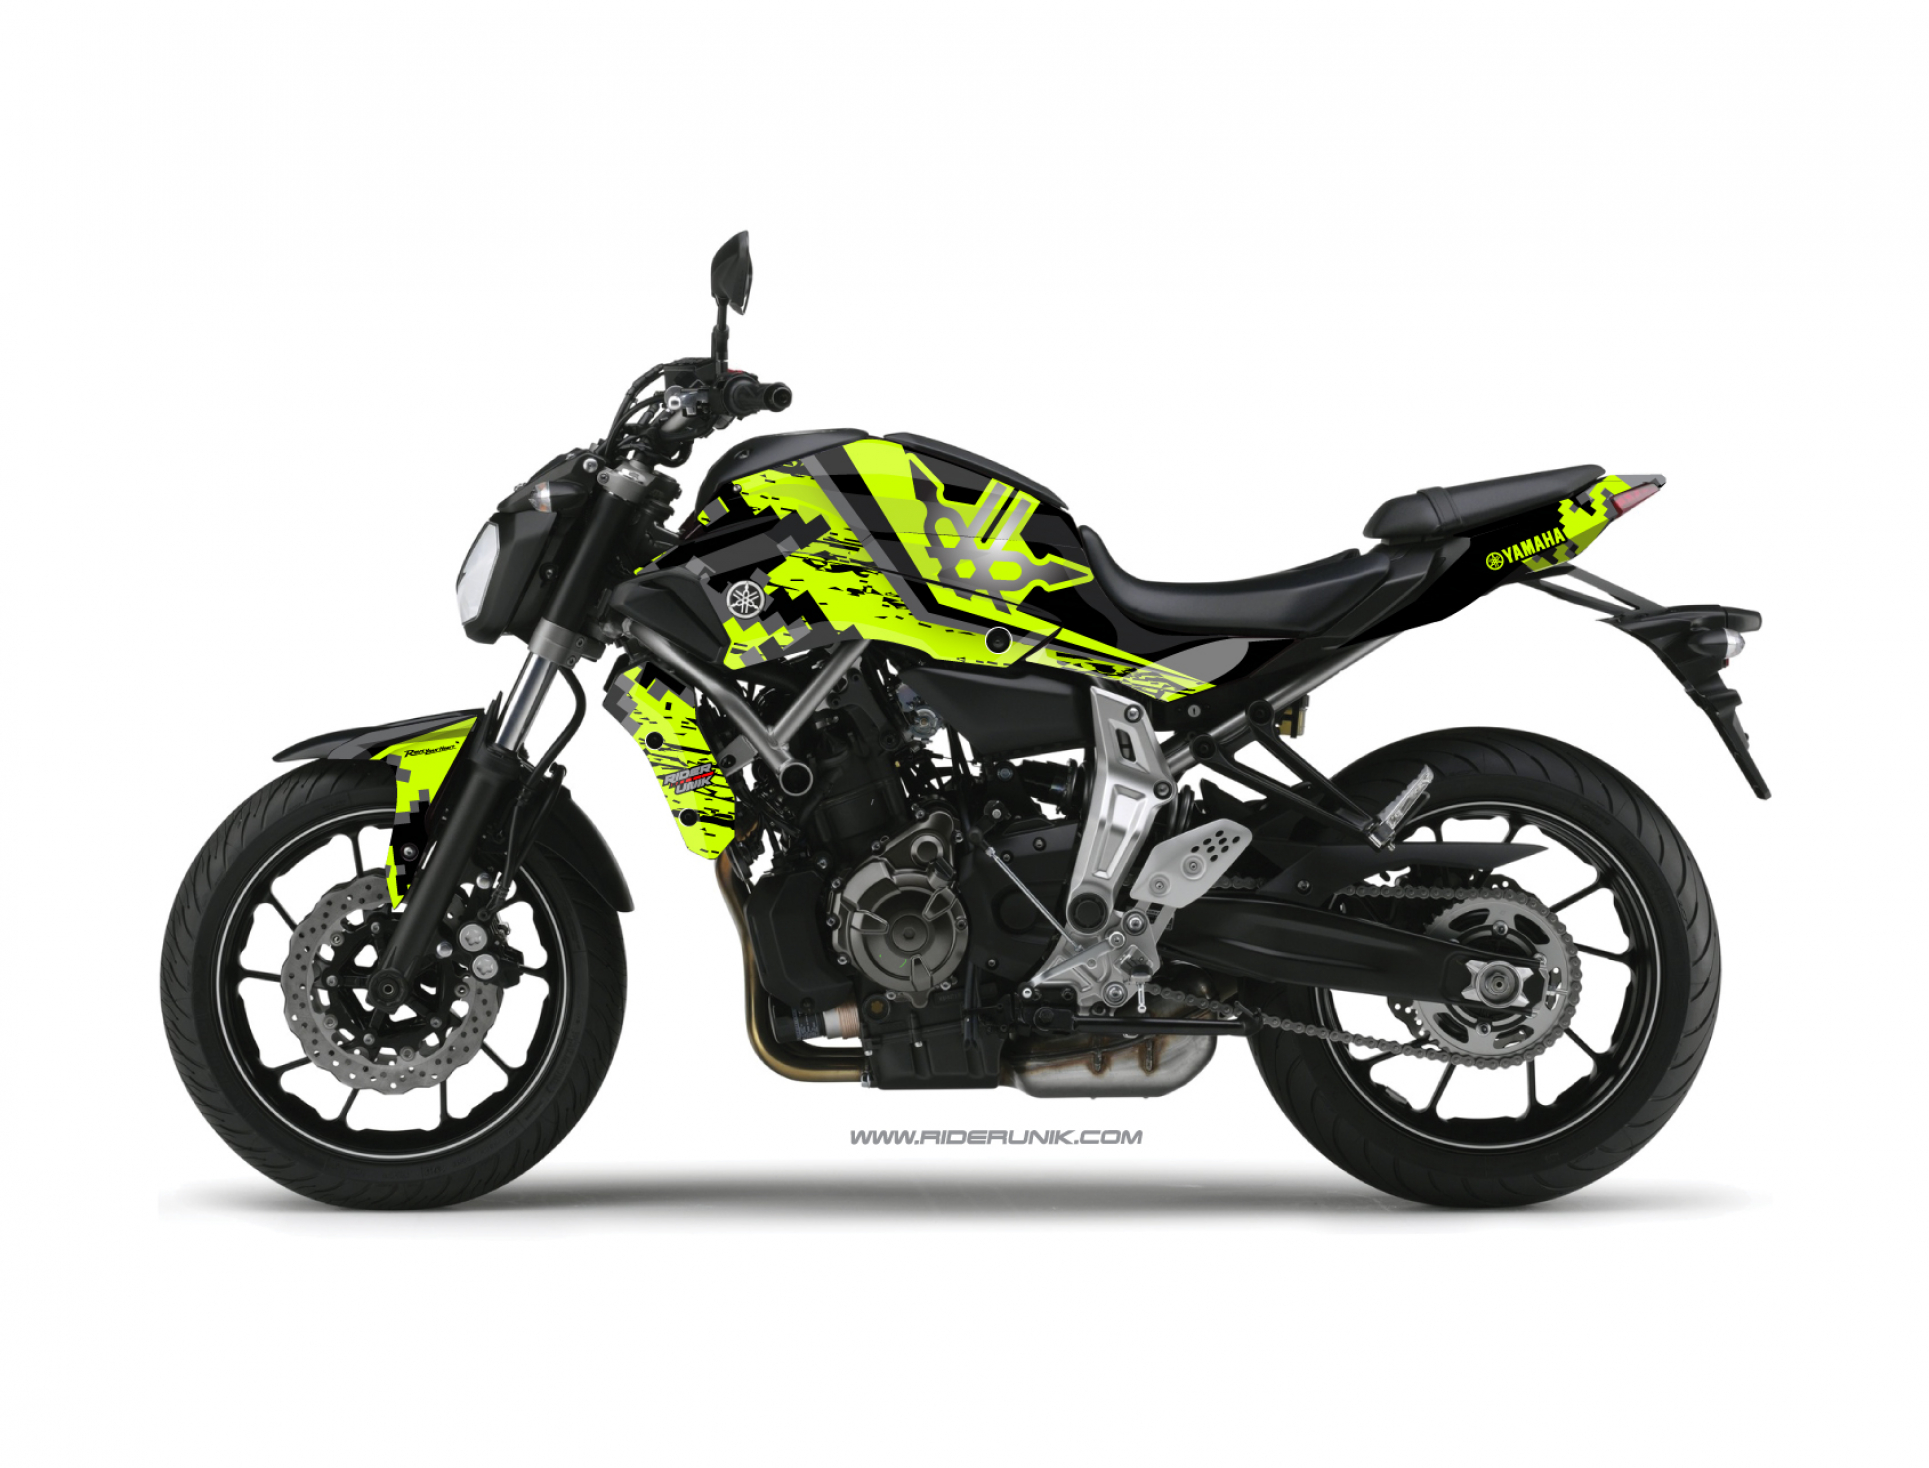 KIT DECO YAMAHA MT 07 URBAN FLUO